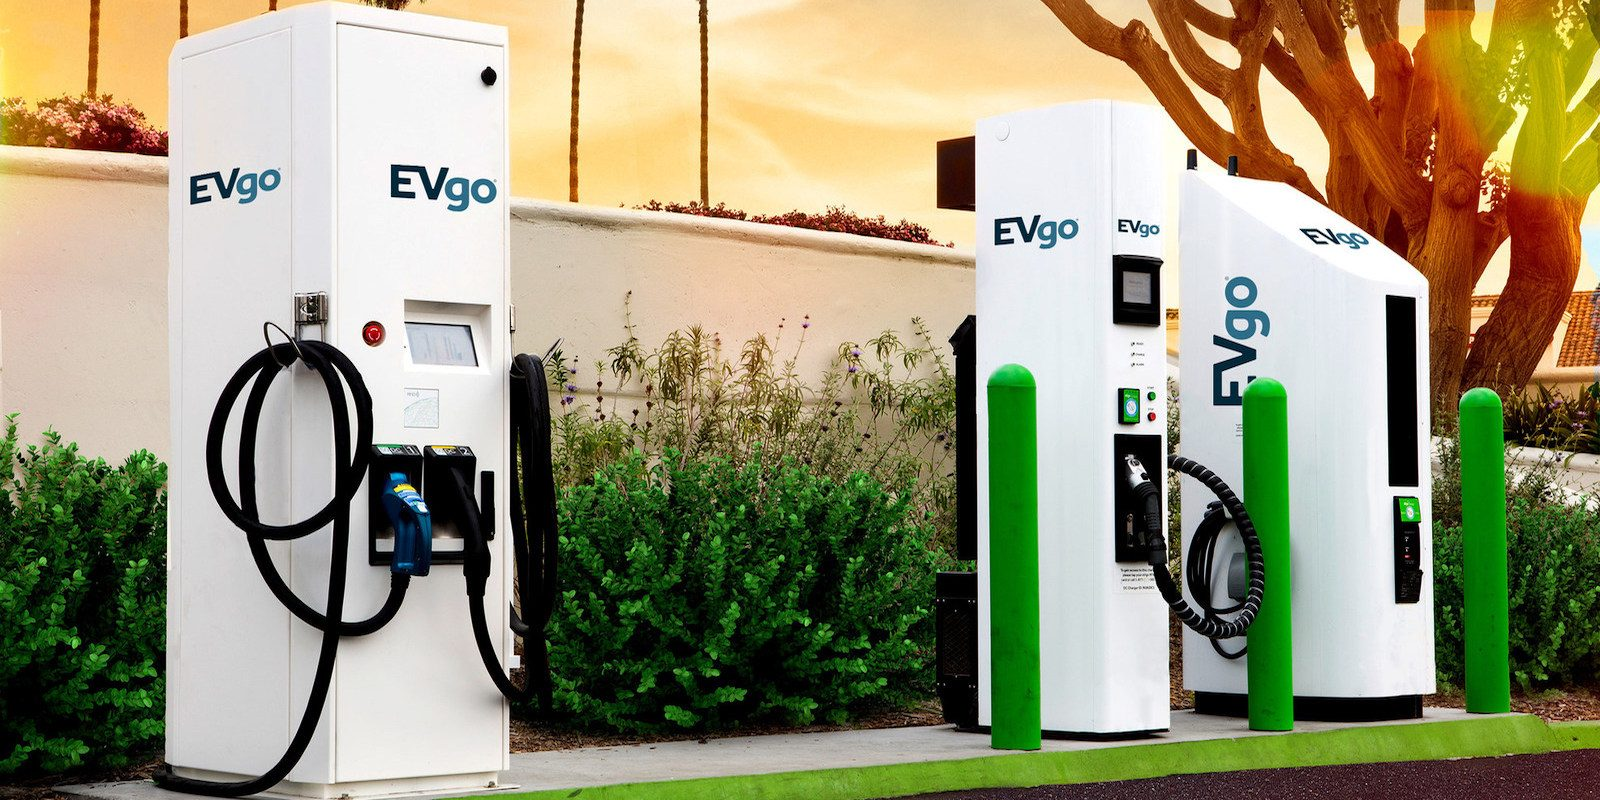 How Much Does It Cost To Charge Electric Car at Charging Station?